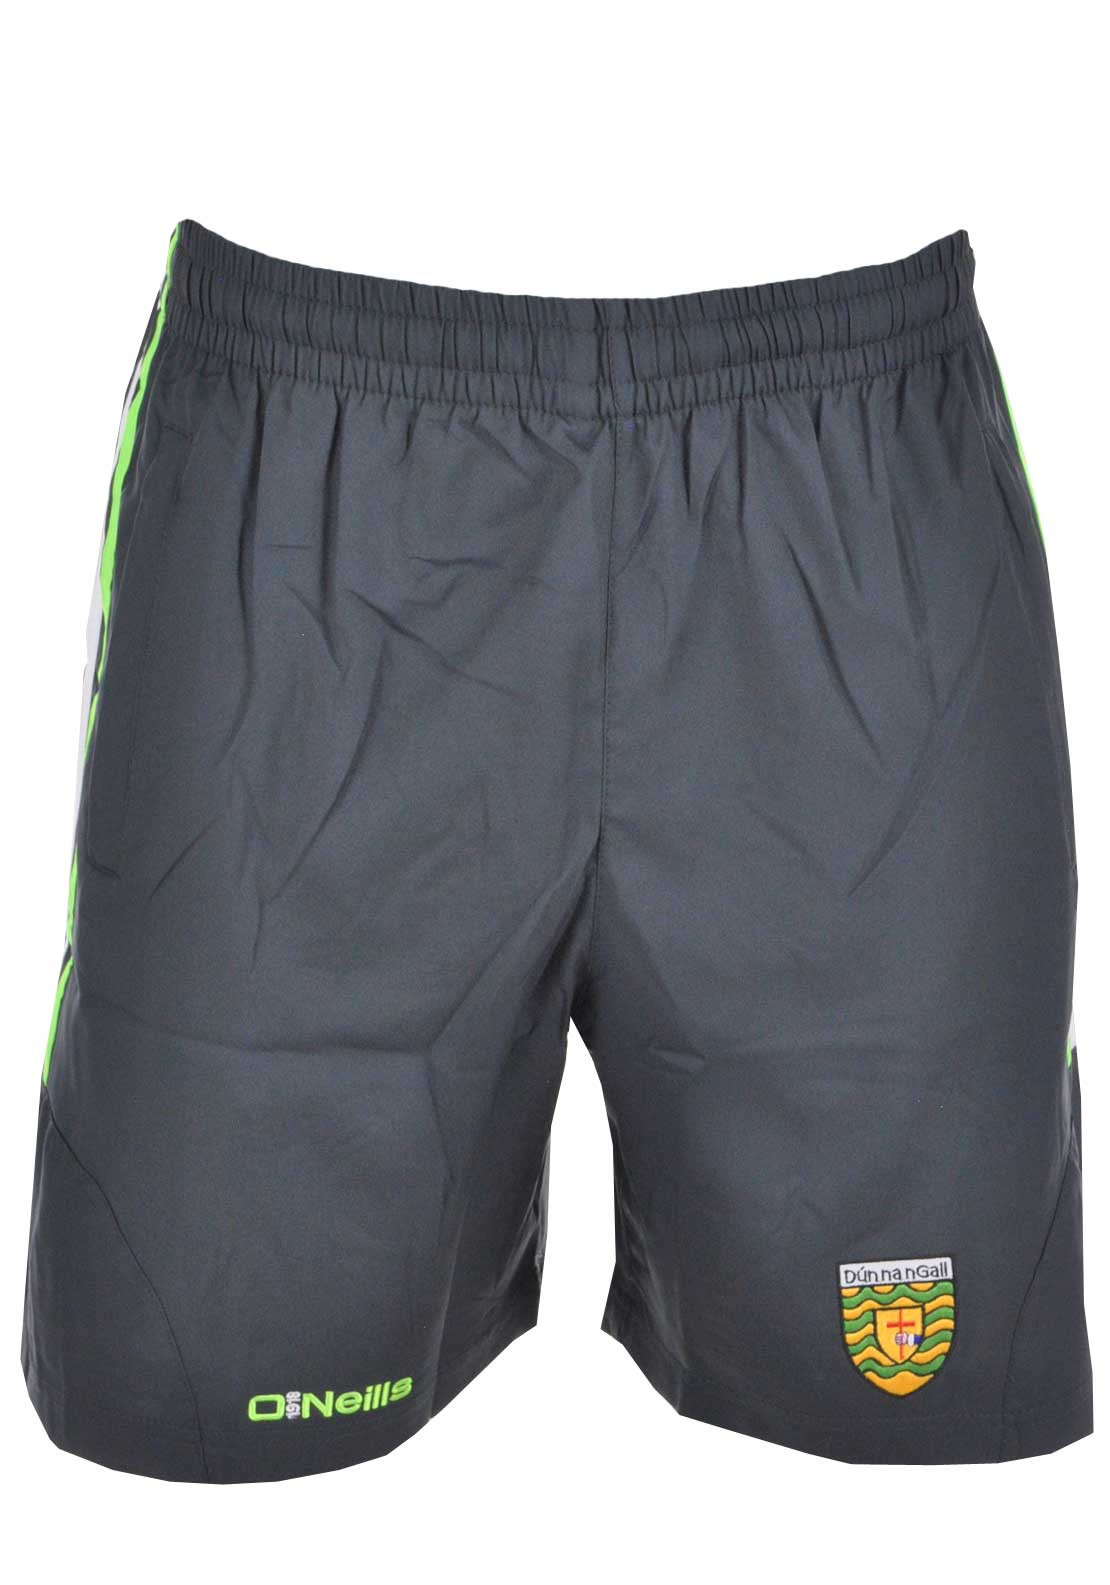 O'Neills Donegal GAA Adults Darwin Shorts, Gunmetal